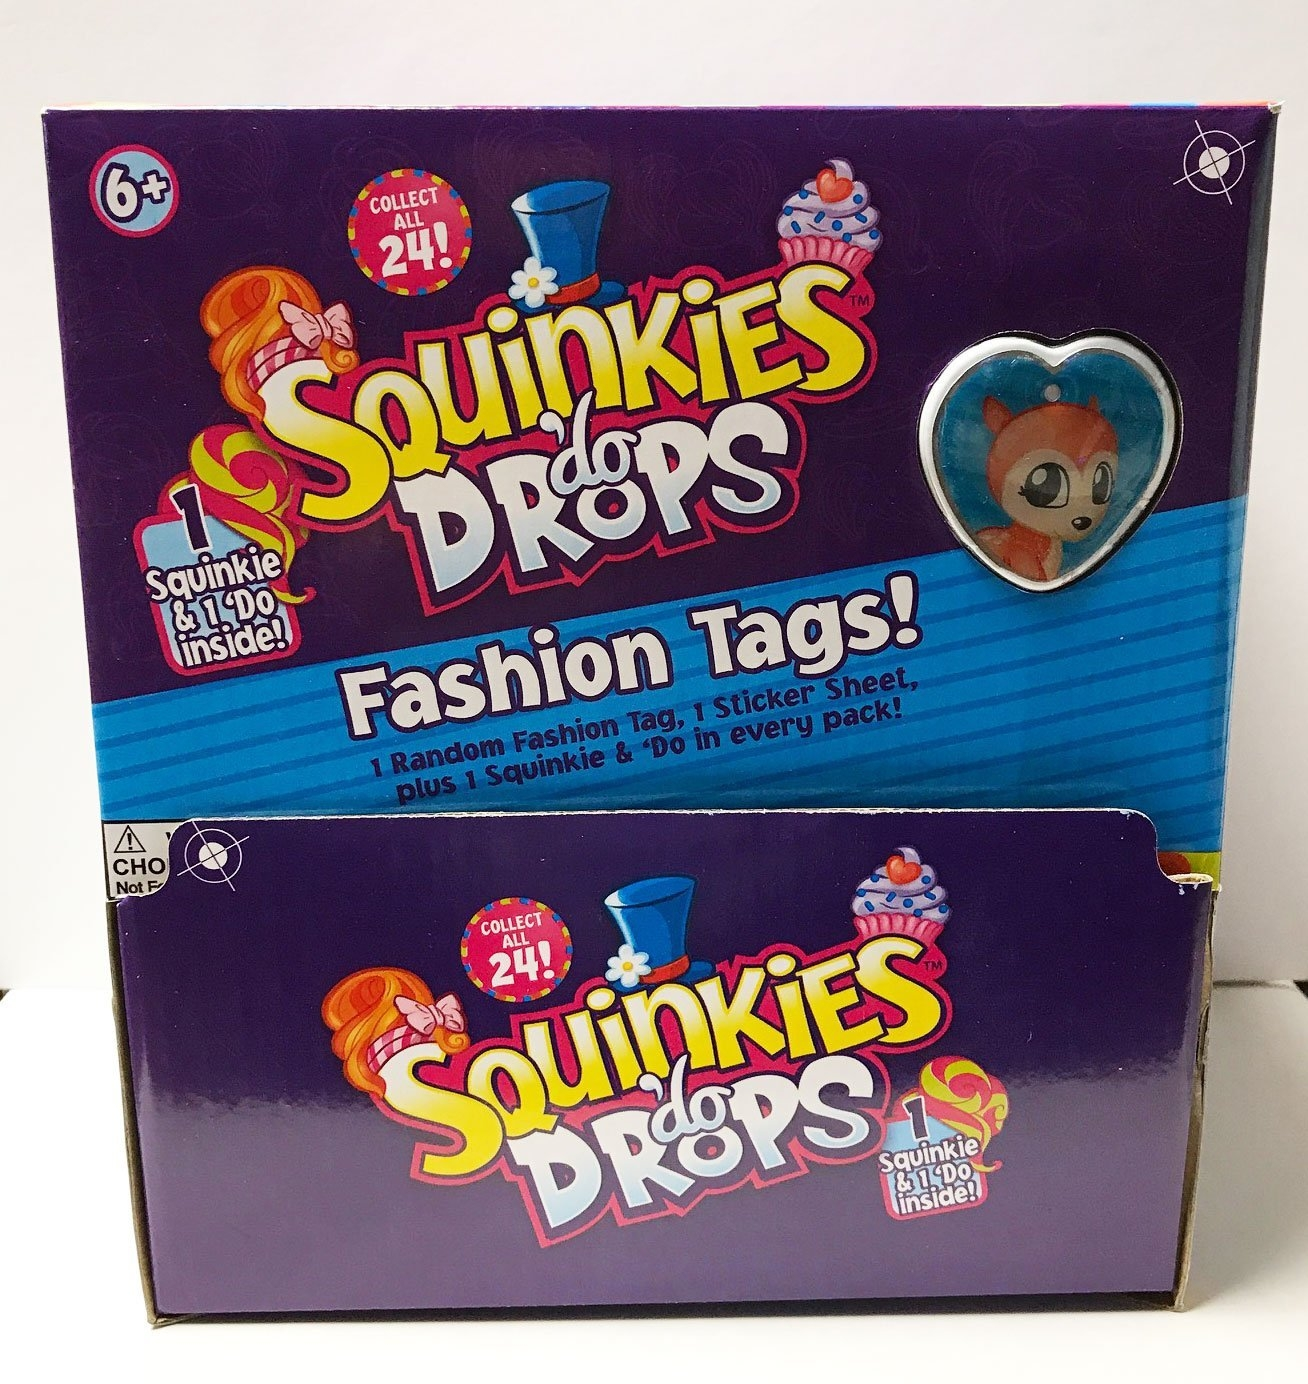 Squinkies 'do Drops Fashion Tags Series 1 with Figures (Pack of 24)